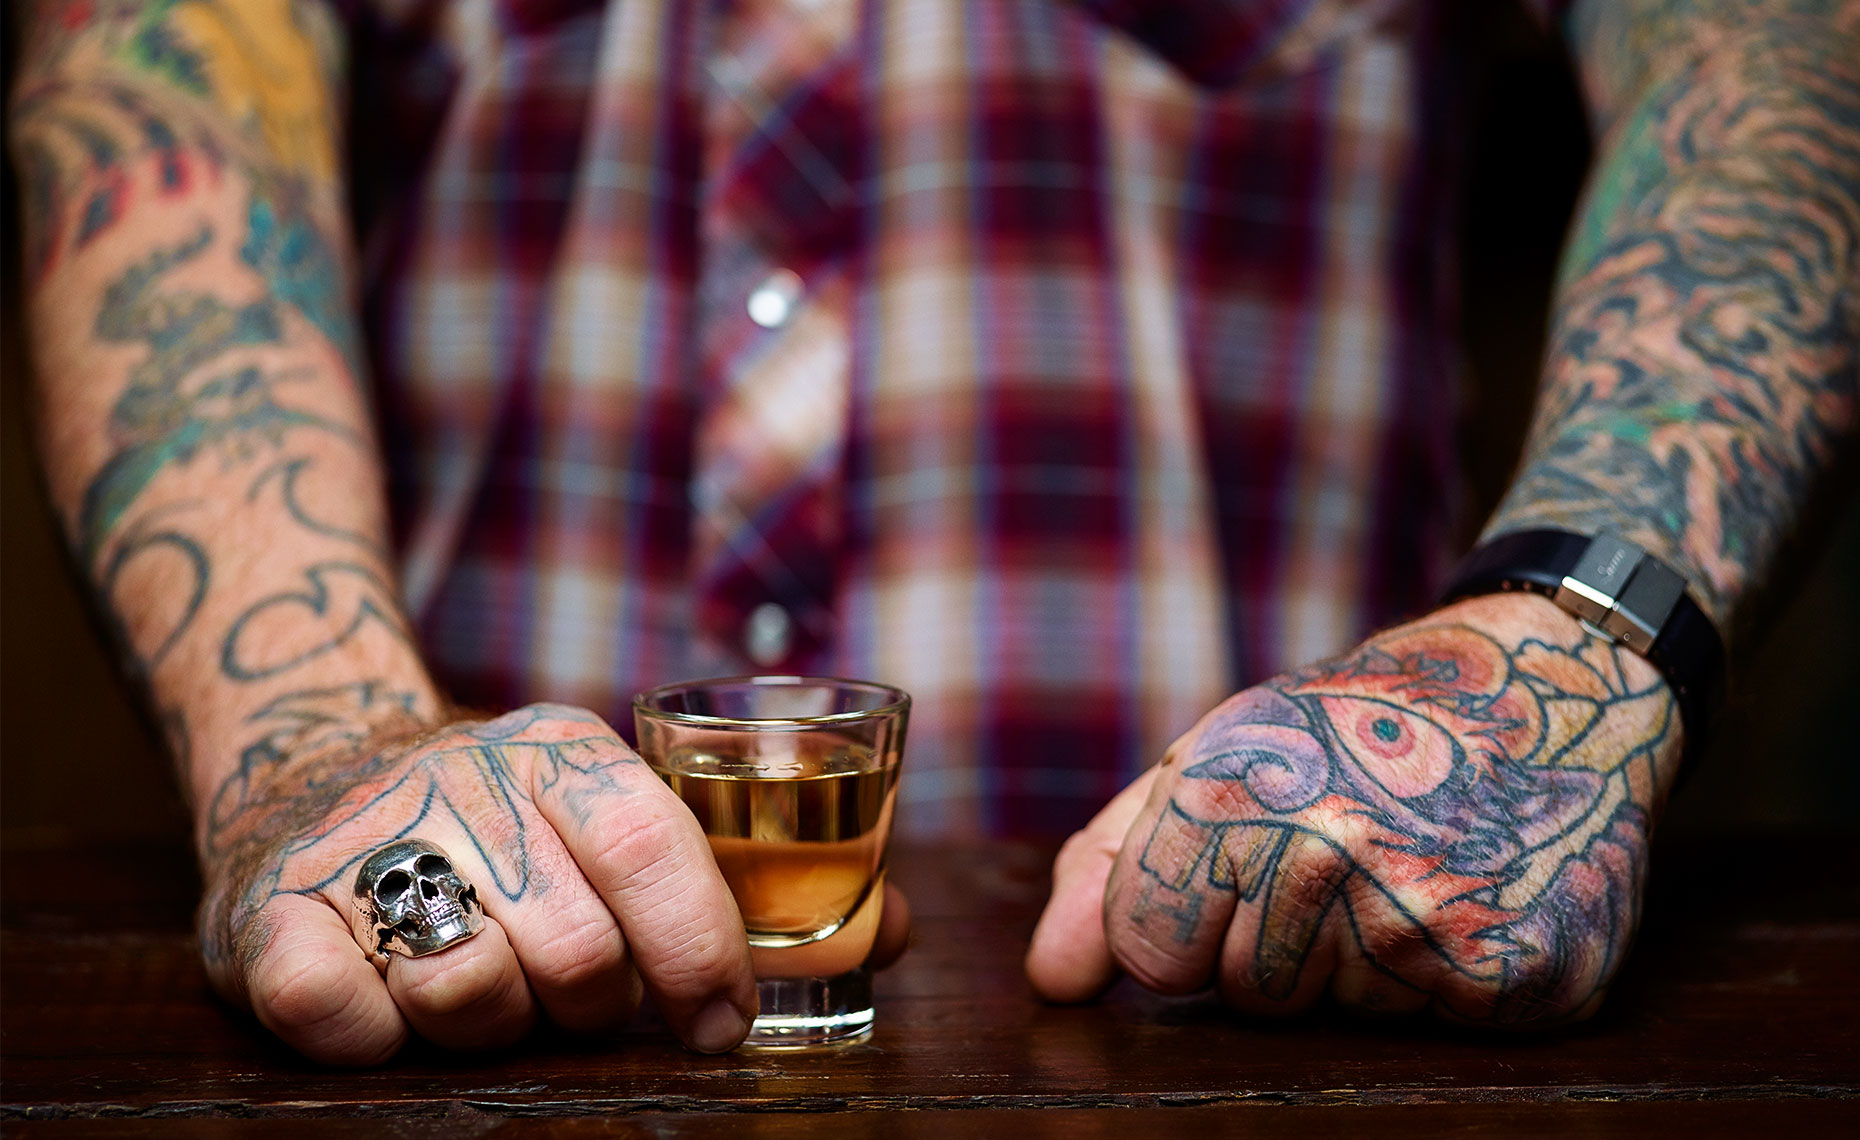 Bartender with colorful tattoos by Leo Gong drink photography